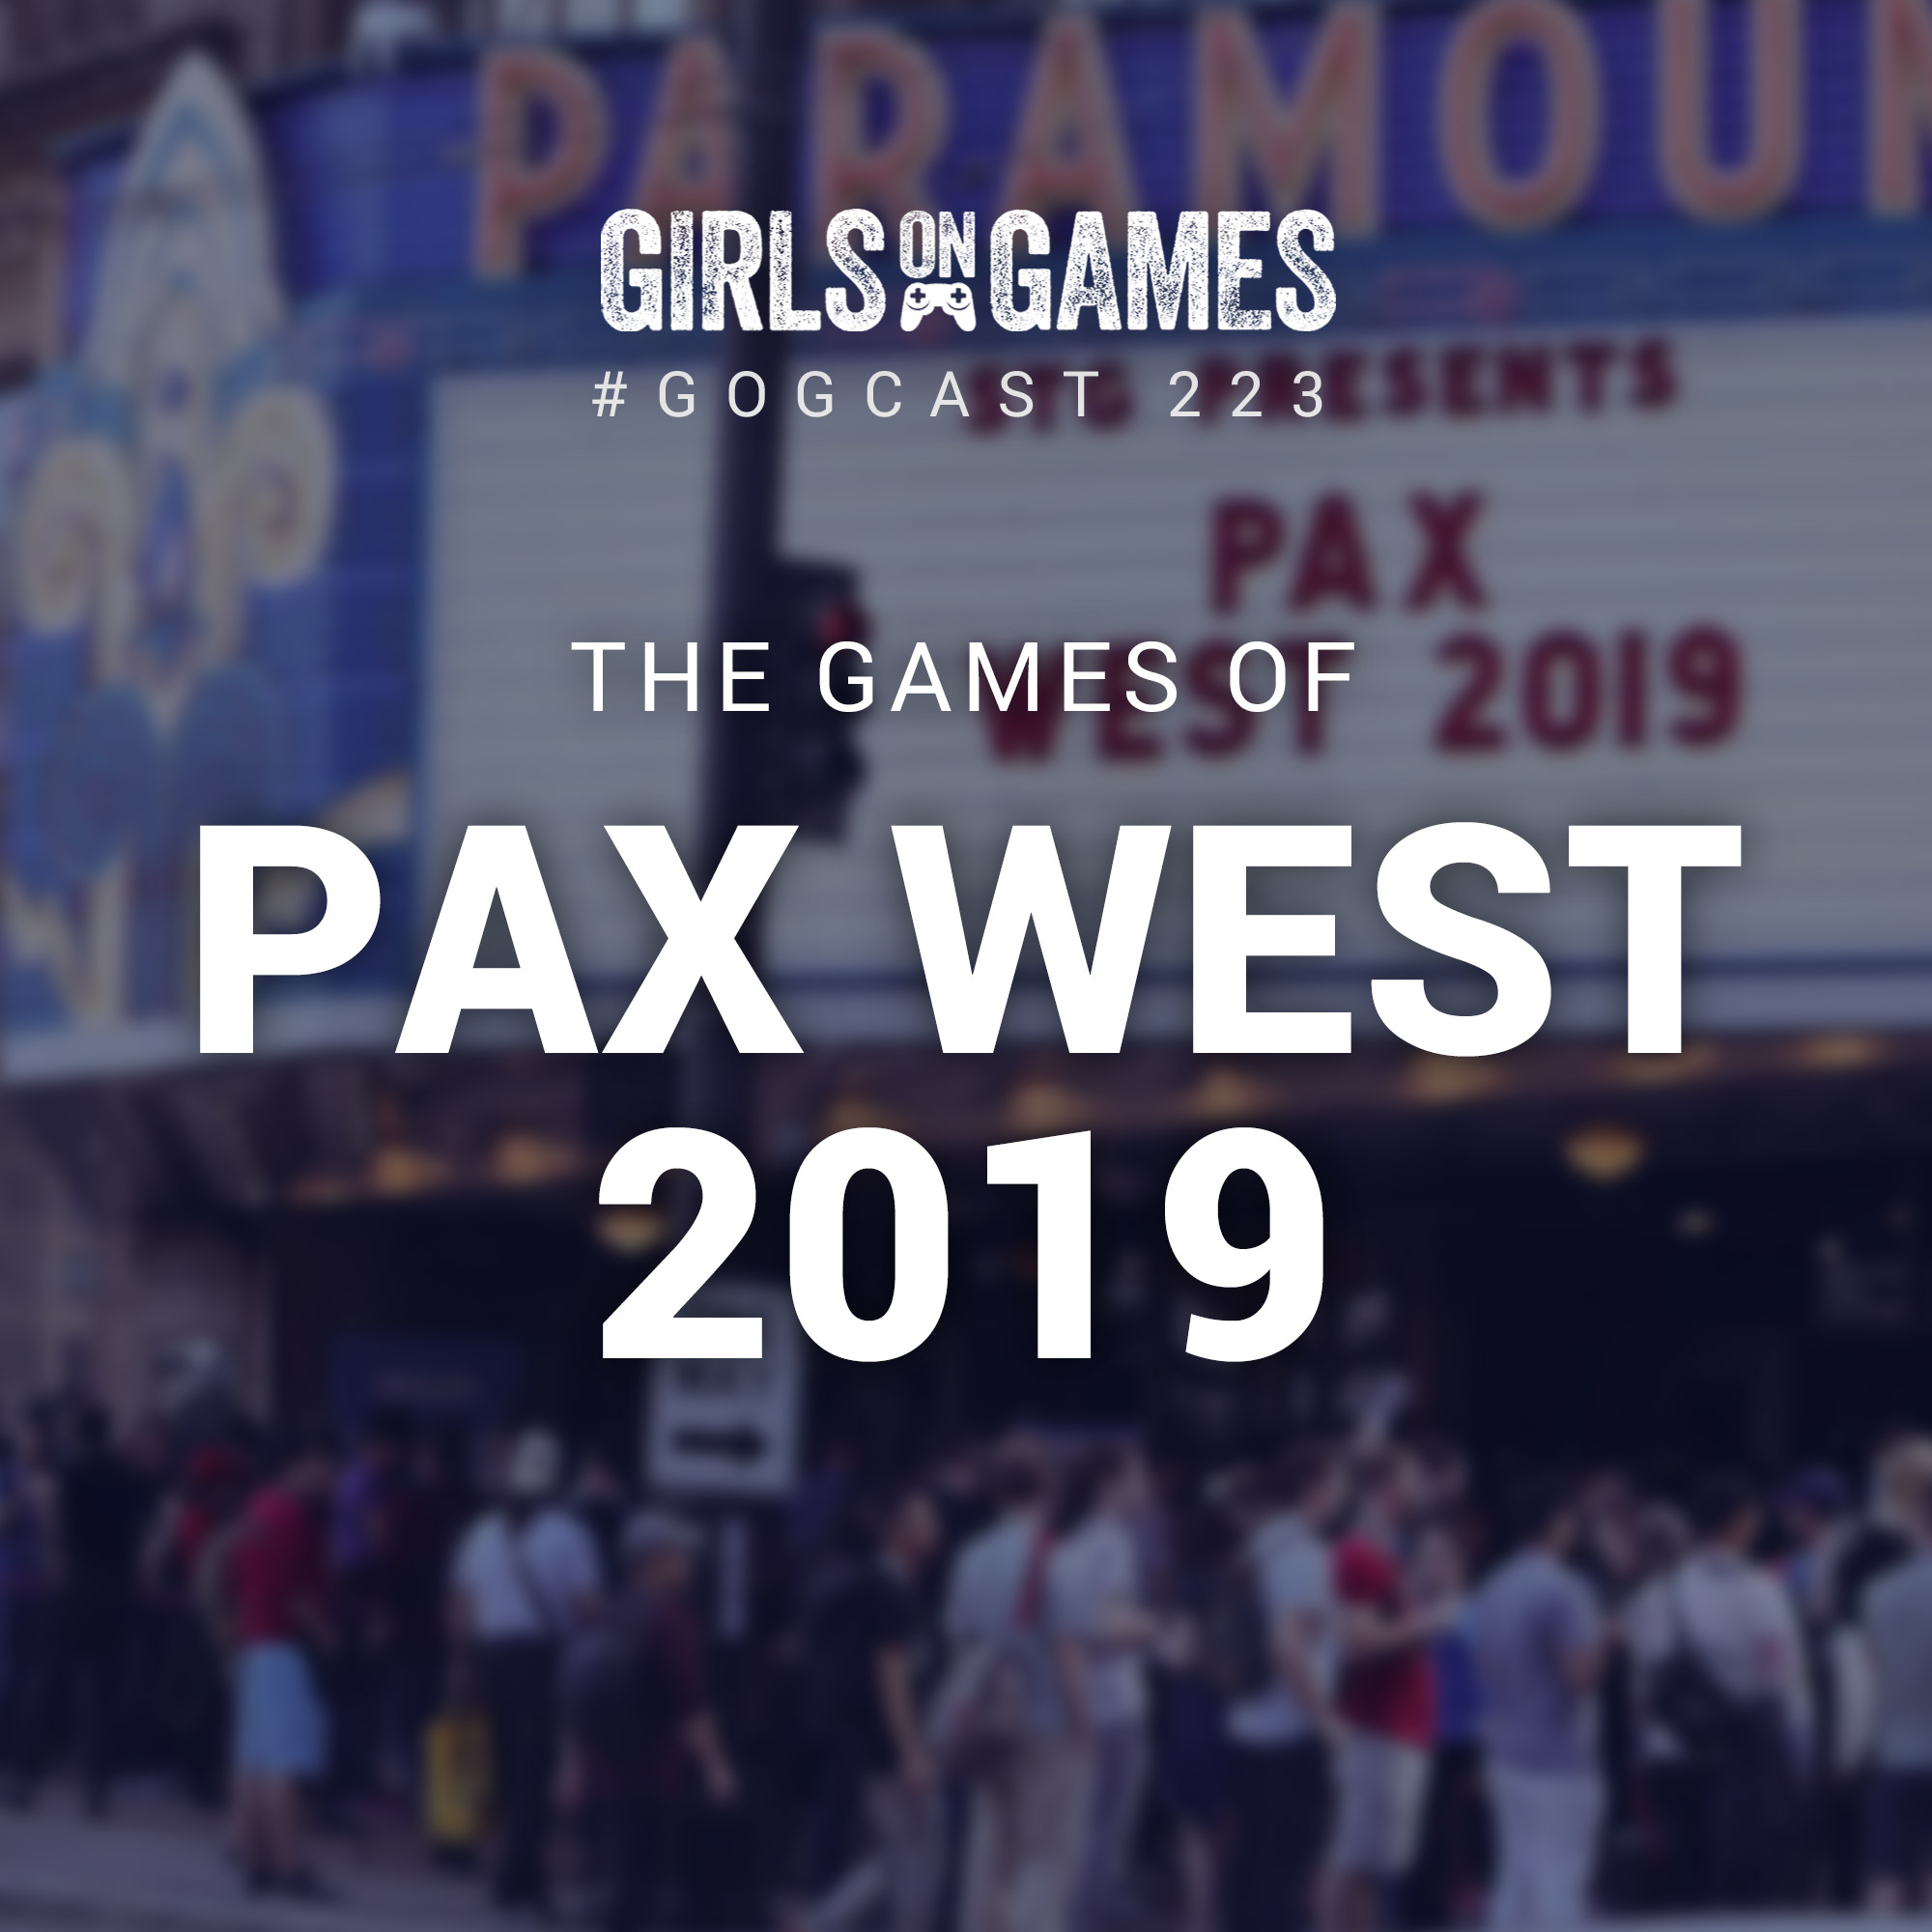 The Girls on Games Podcast | Podbay